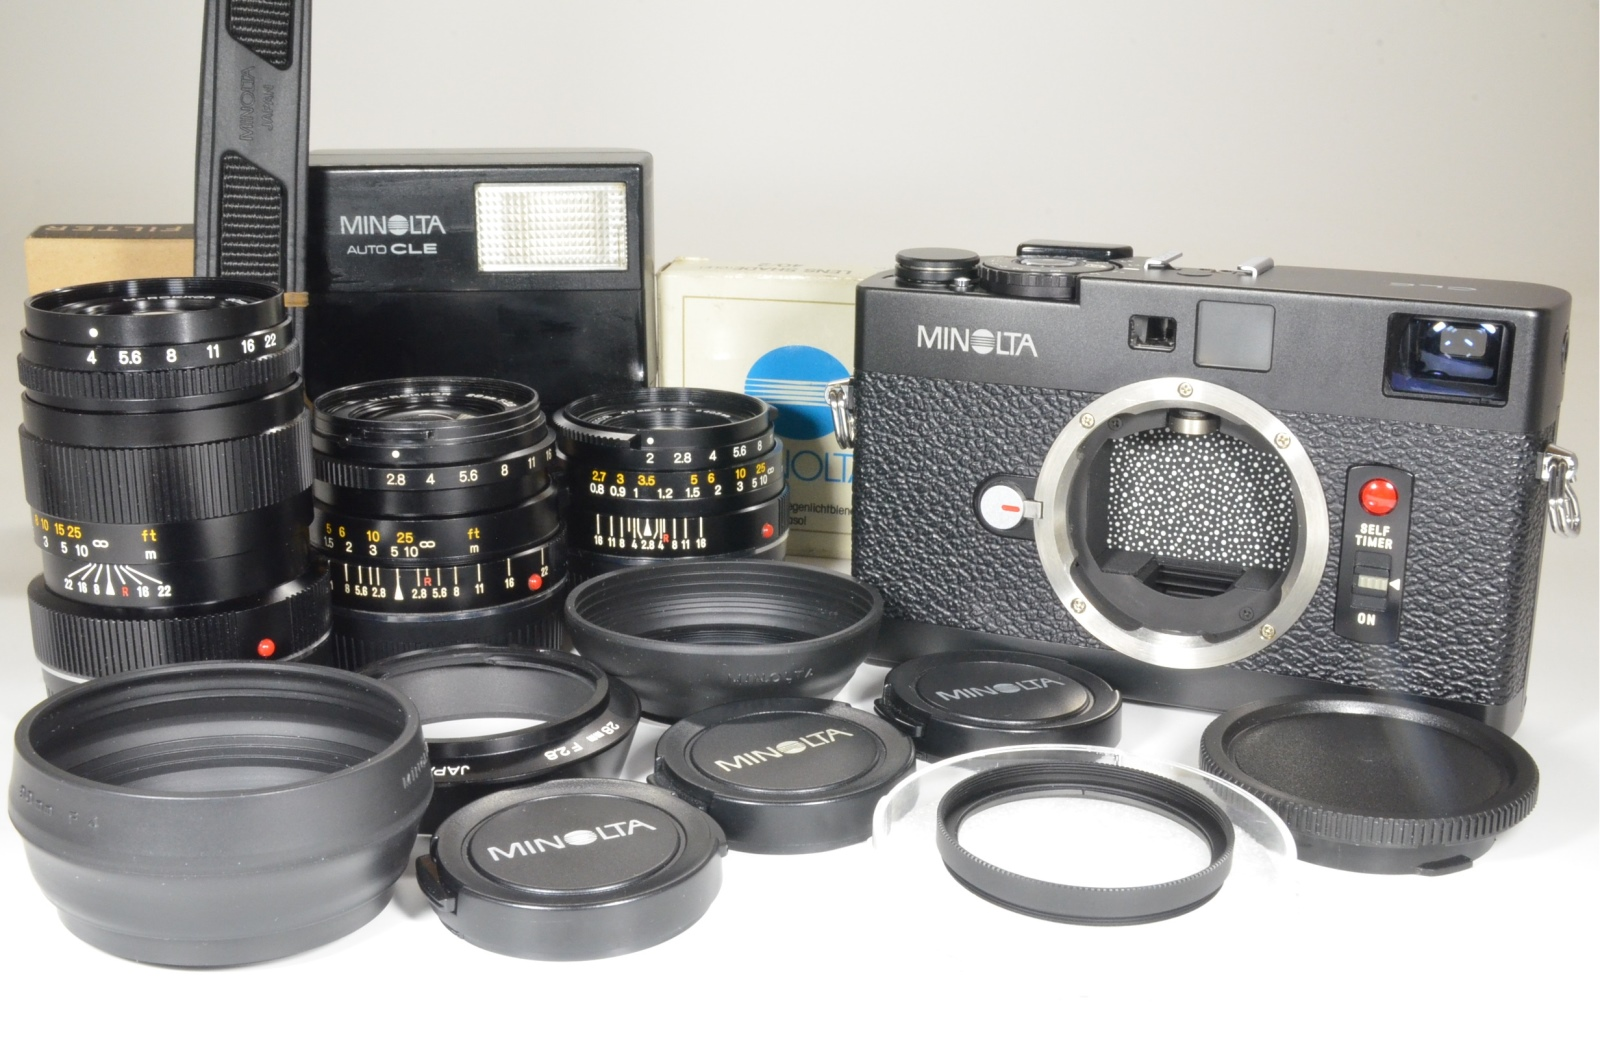 minolta cle 35mm film camera with m-rokkor 40mm f2, 28mm f2.8, 90mm f4 and flash